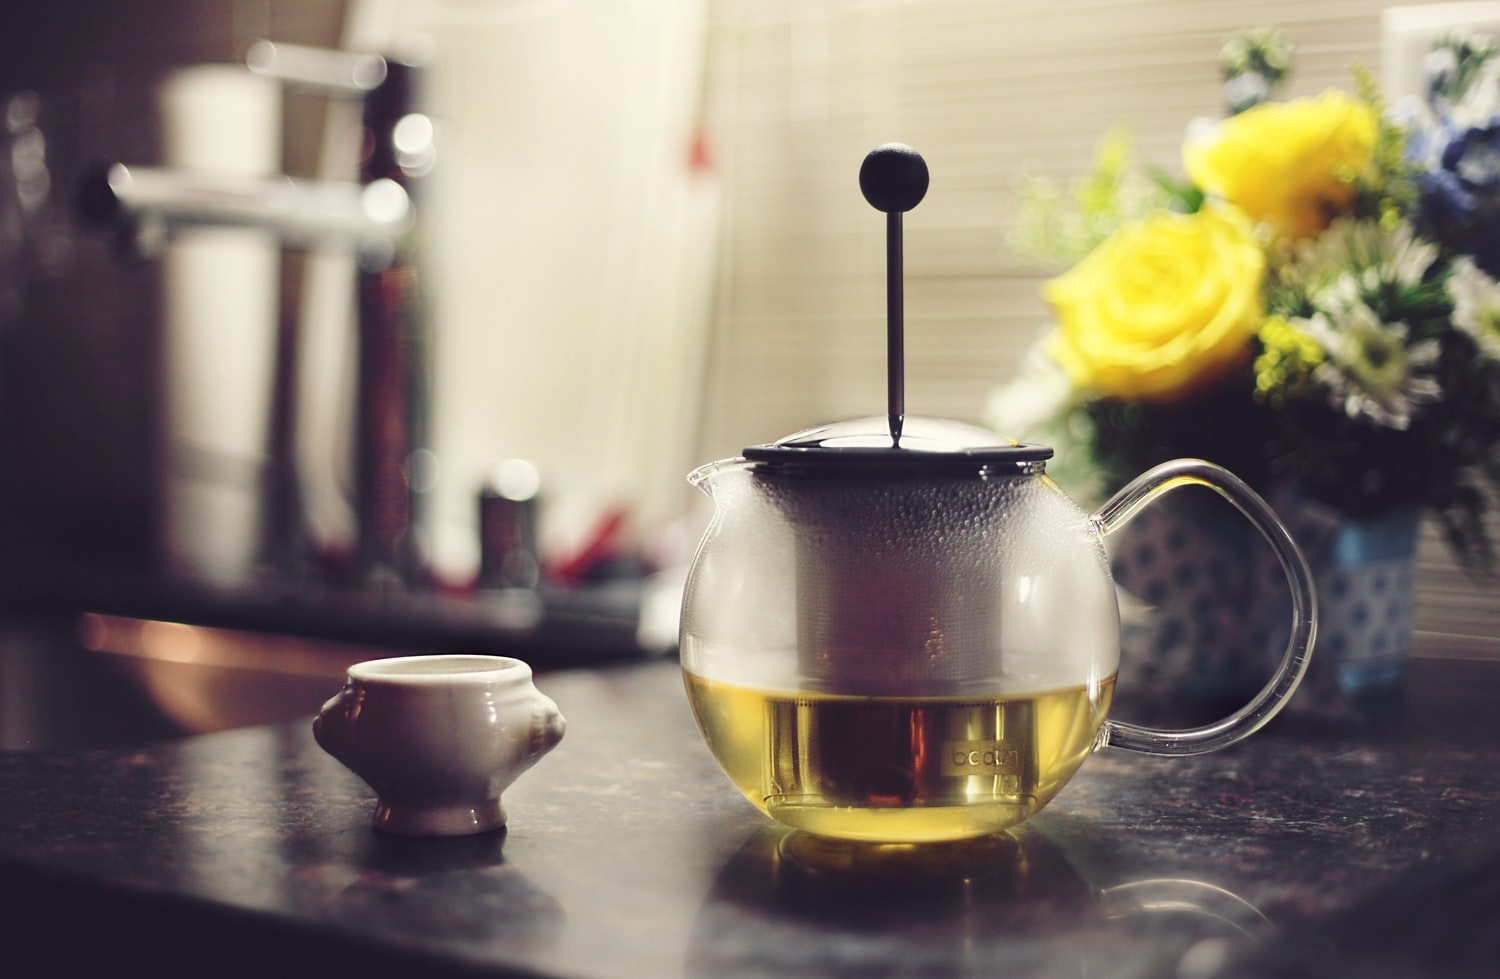 teapot filled with yellow liquid on table